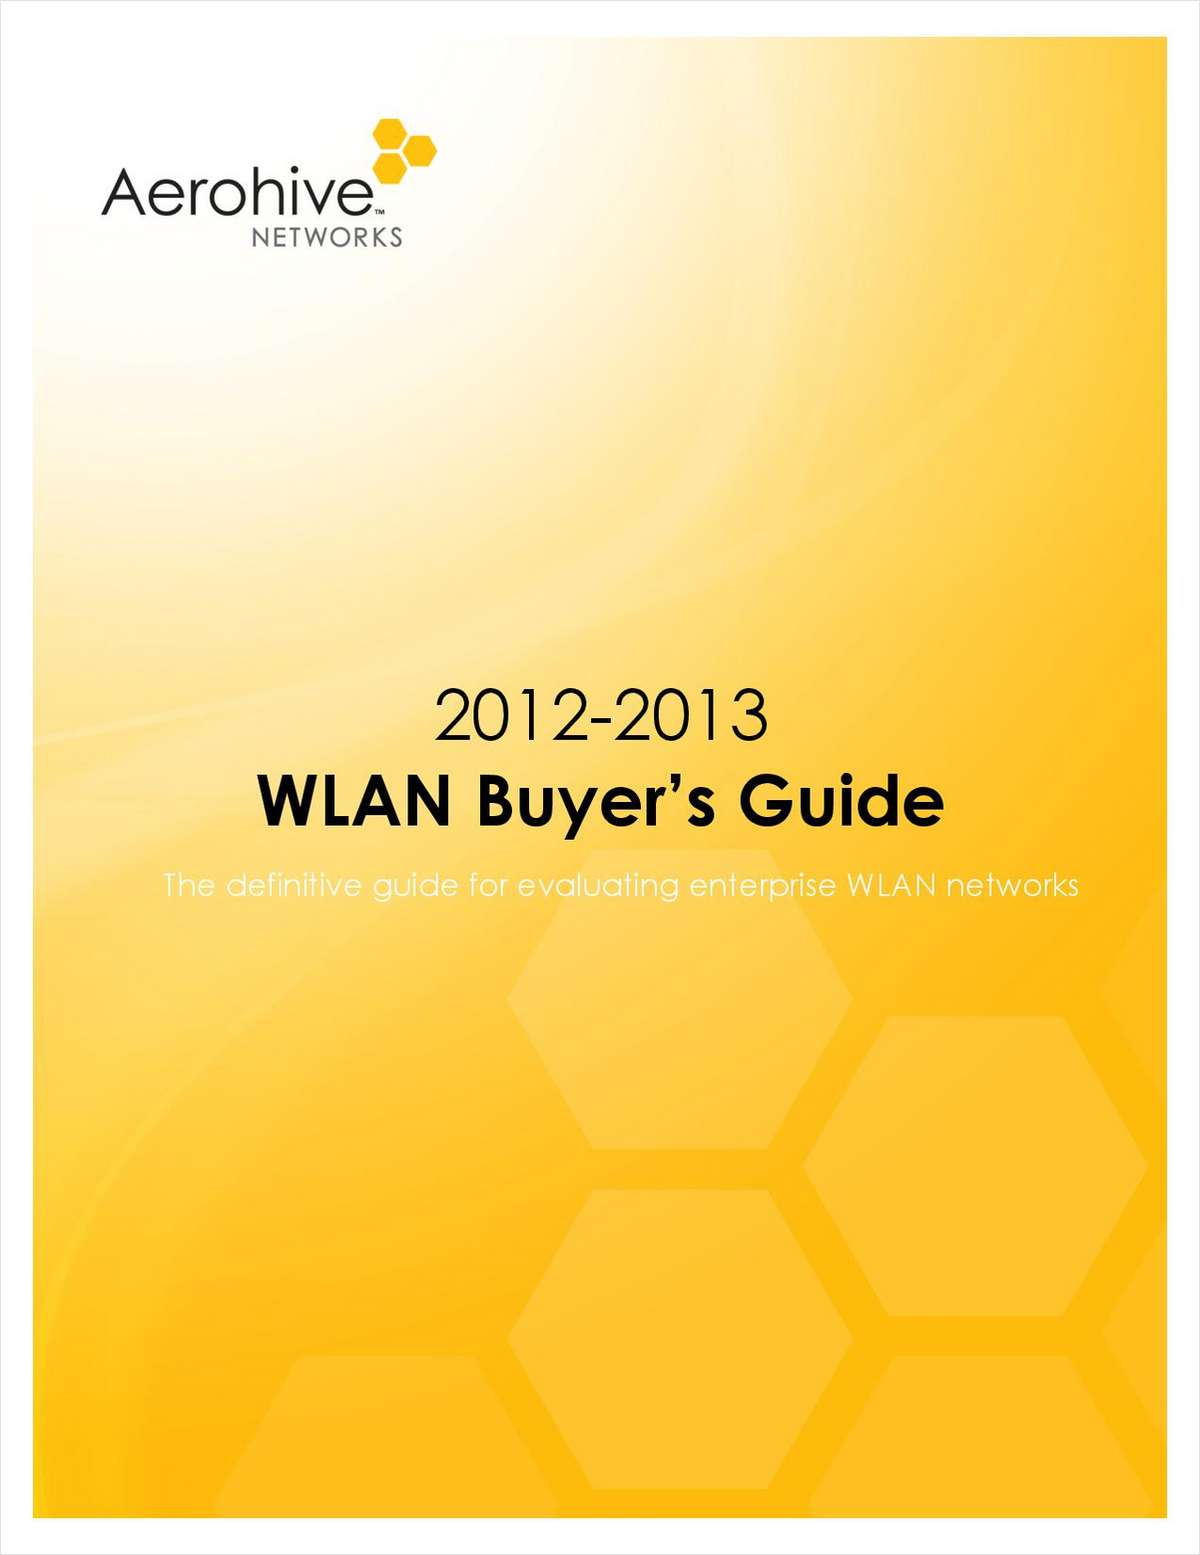 2012-2013 WLAN Buyer's Guide